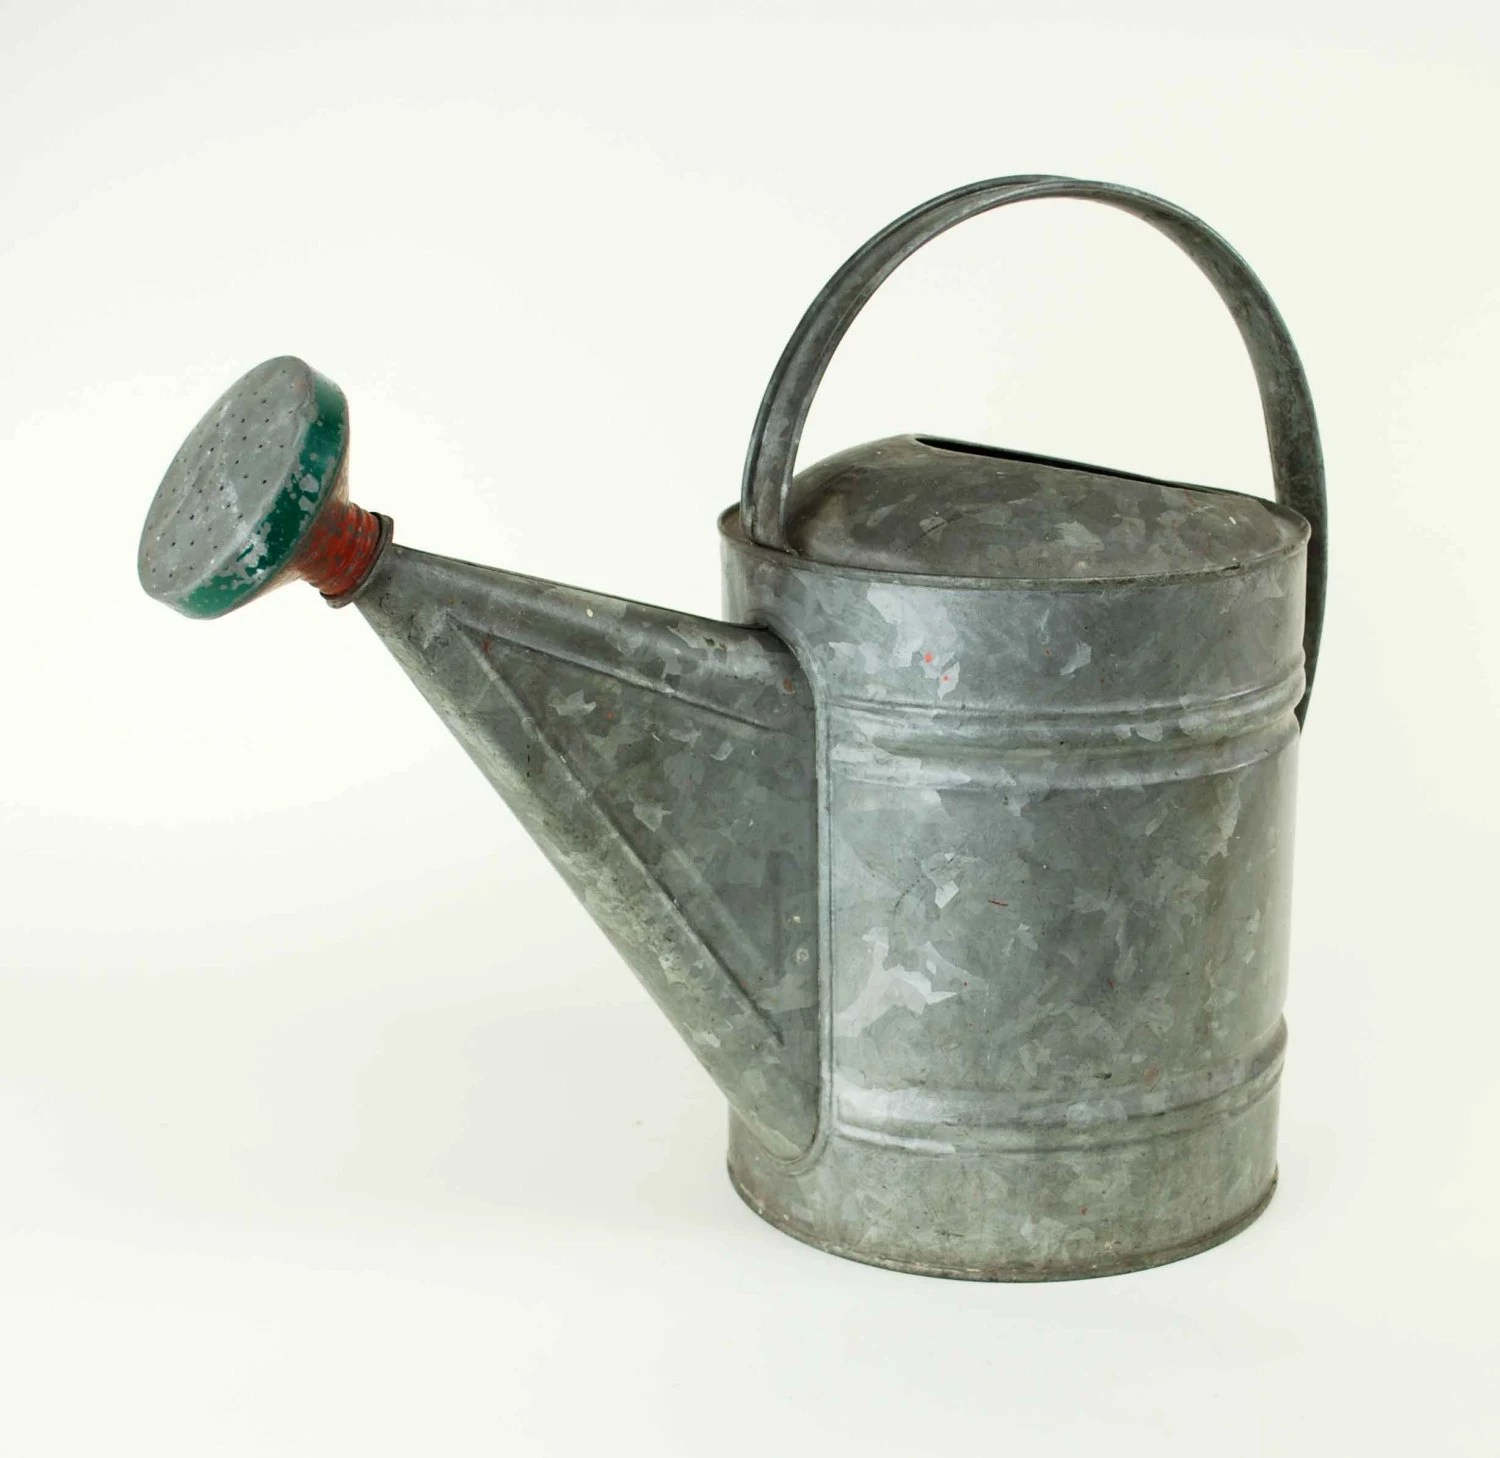 Galvanized Watering Cans Vintage Galvanized Metal Watering Can